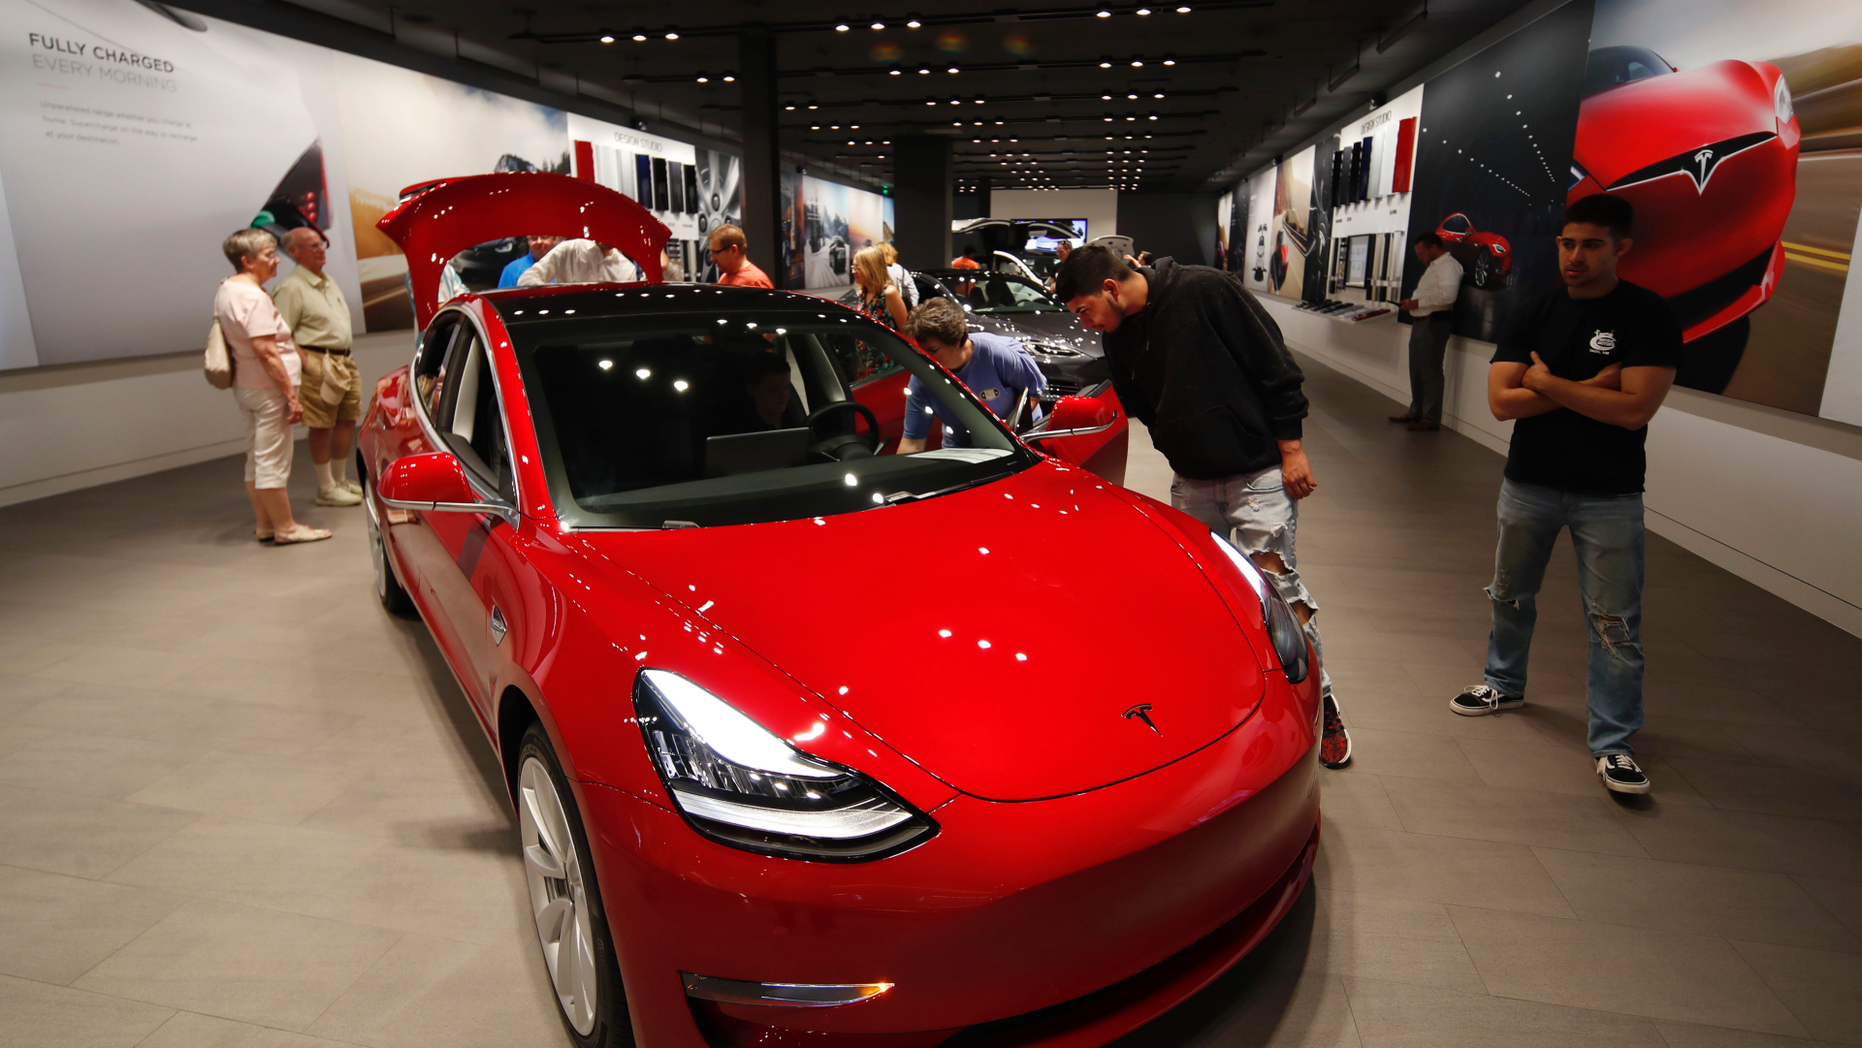 Tesla will keep stores open, vehicle price increase coming after March 18